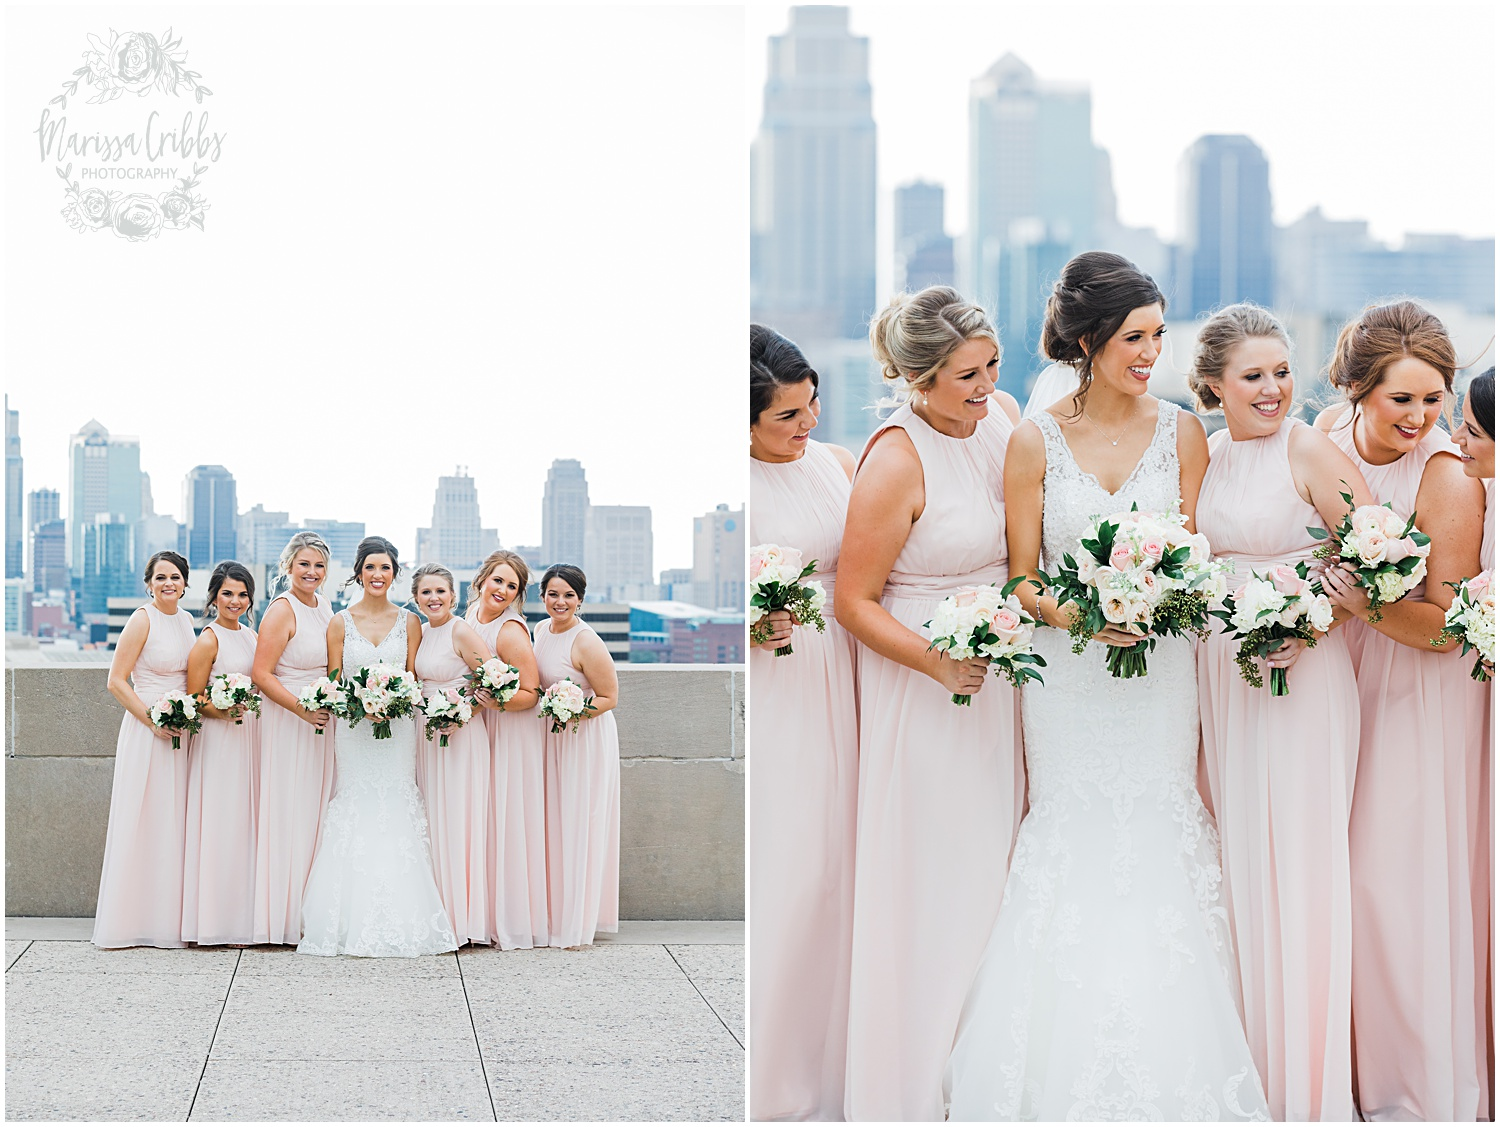 MEGAN & DEREK WEDDING BLOG | MARISSA CRIBBS PHOTOGRAPHY_8156.jpg